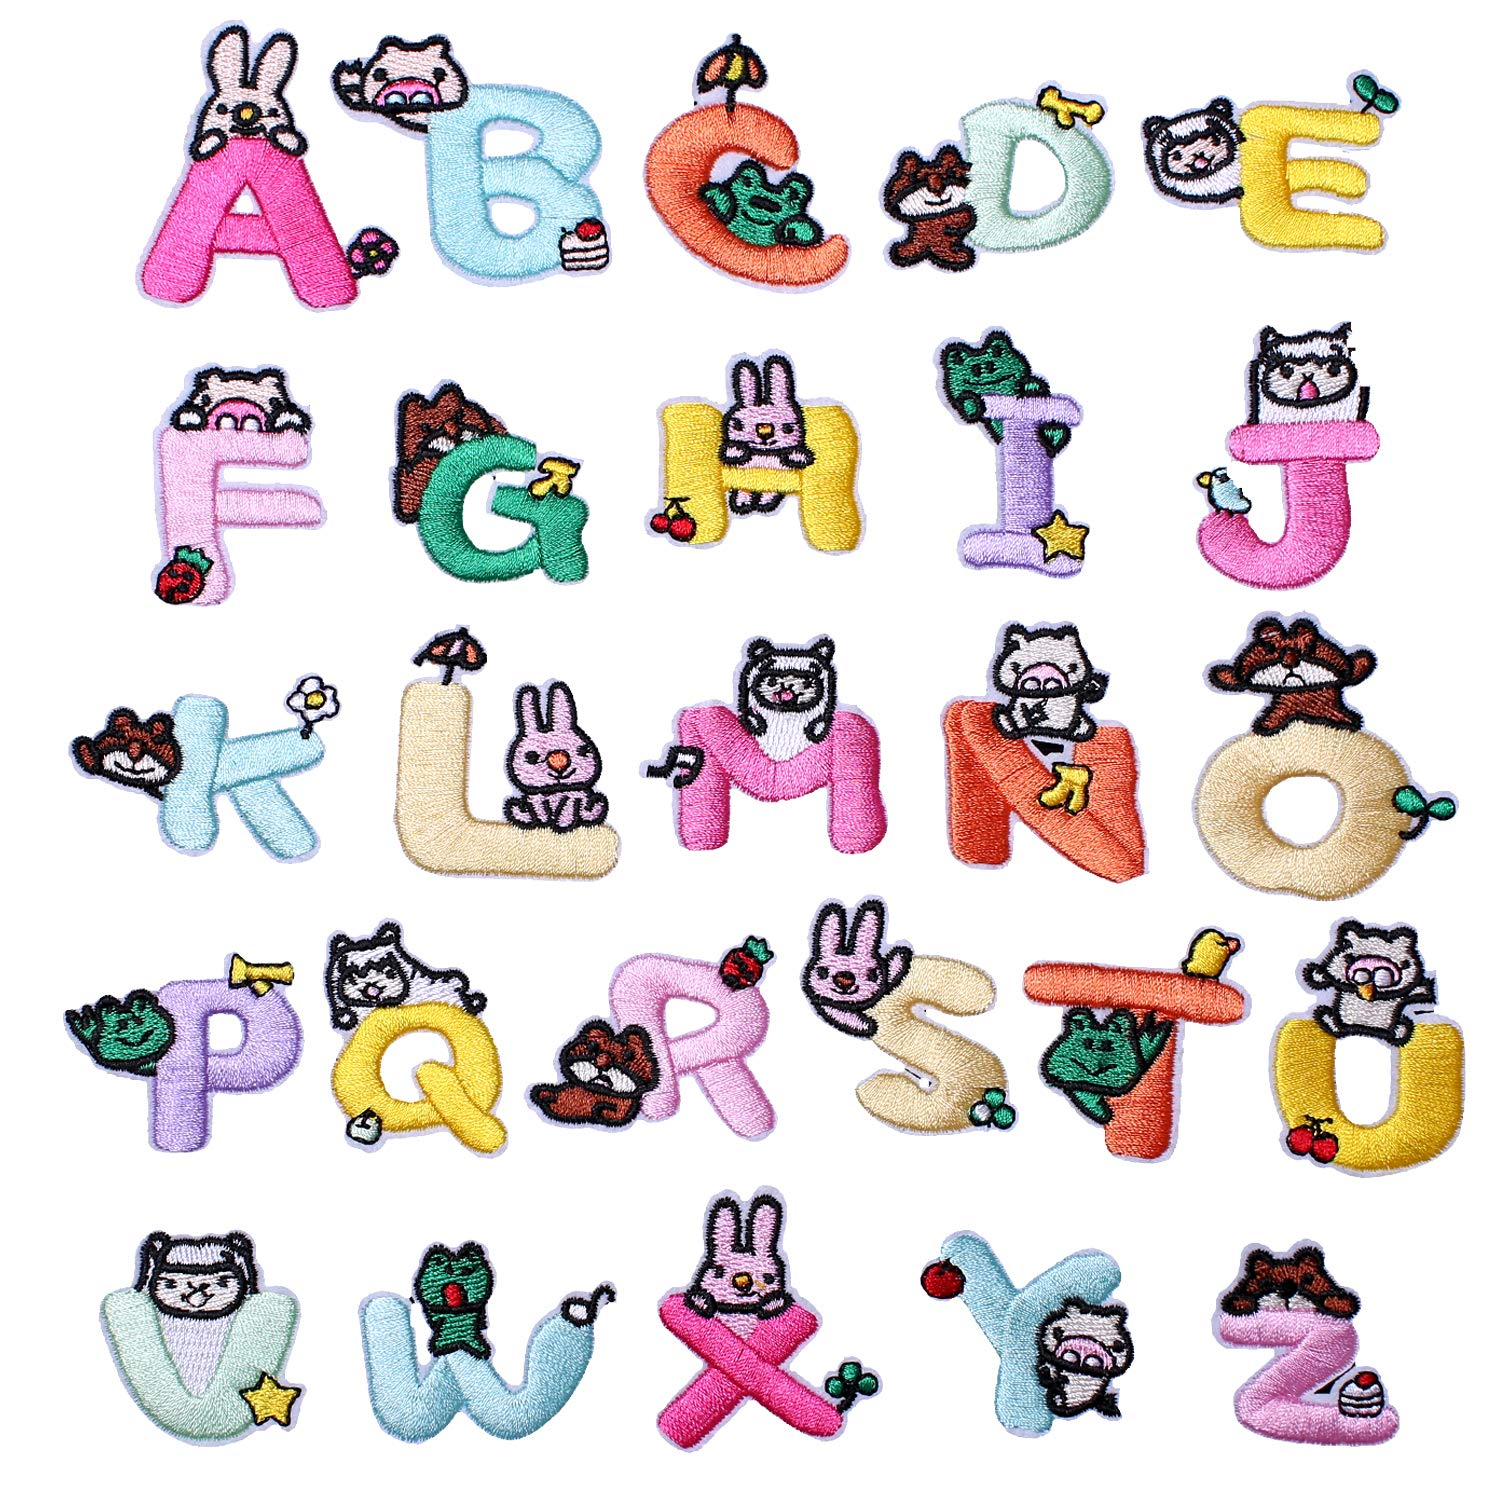 SHELCUPCool Embroidered Iron Patches, for Jackets, Packs, Jeans, Assorted Styles, 26pcs Letters Style 5